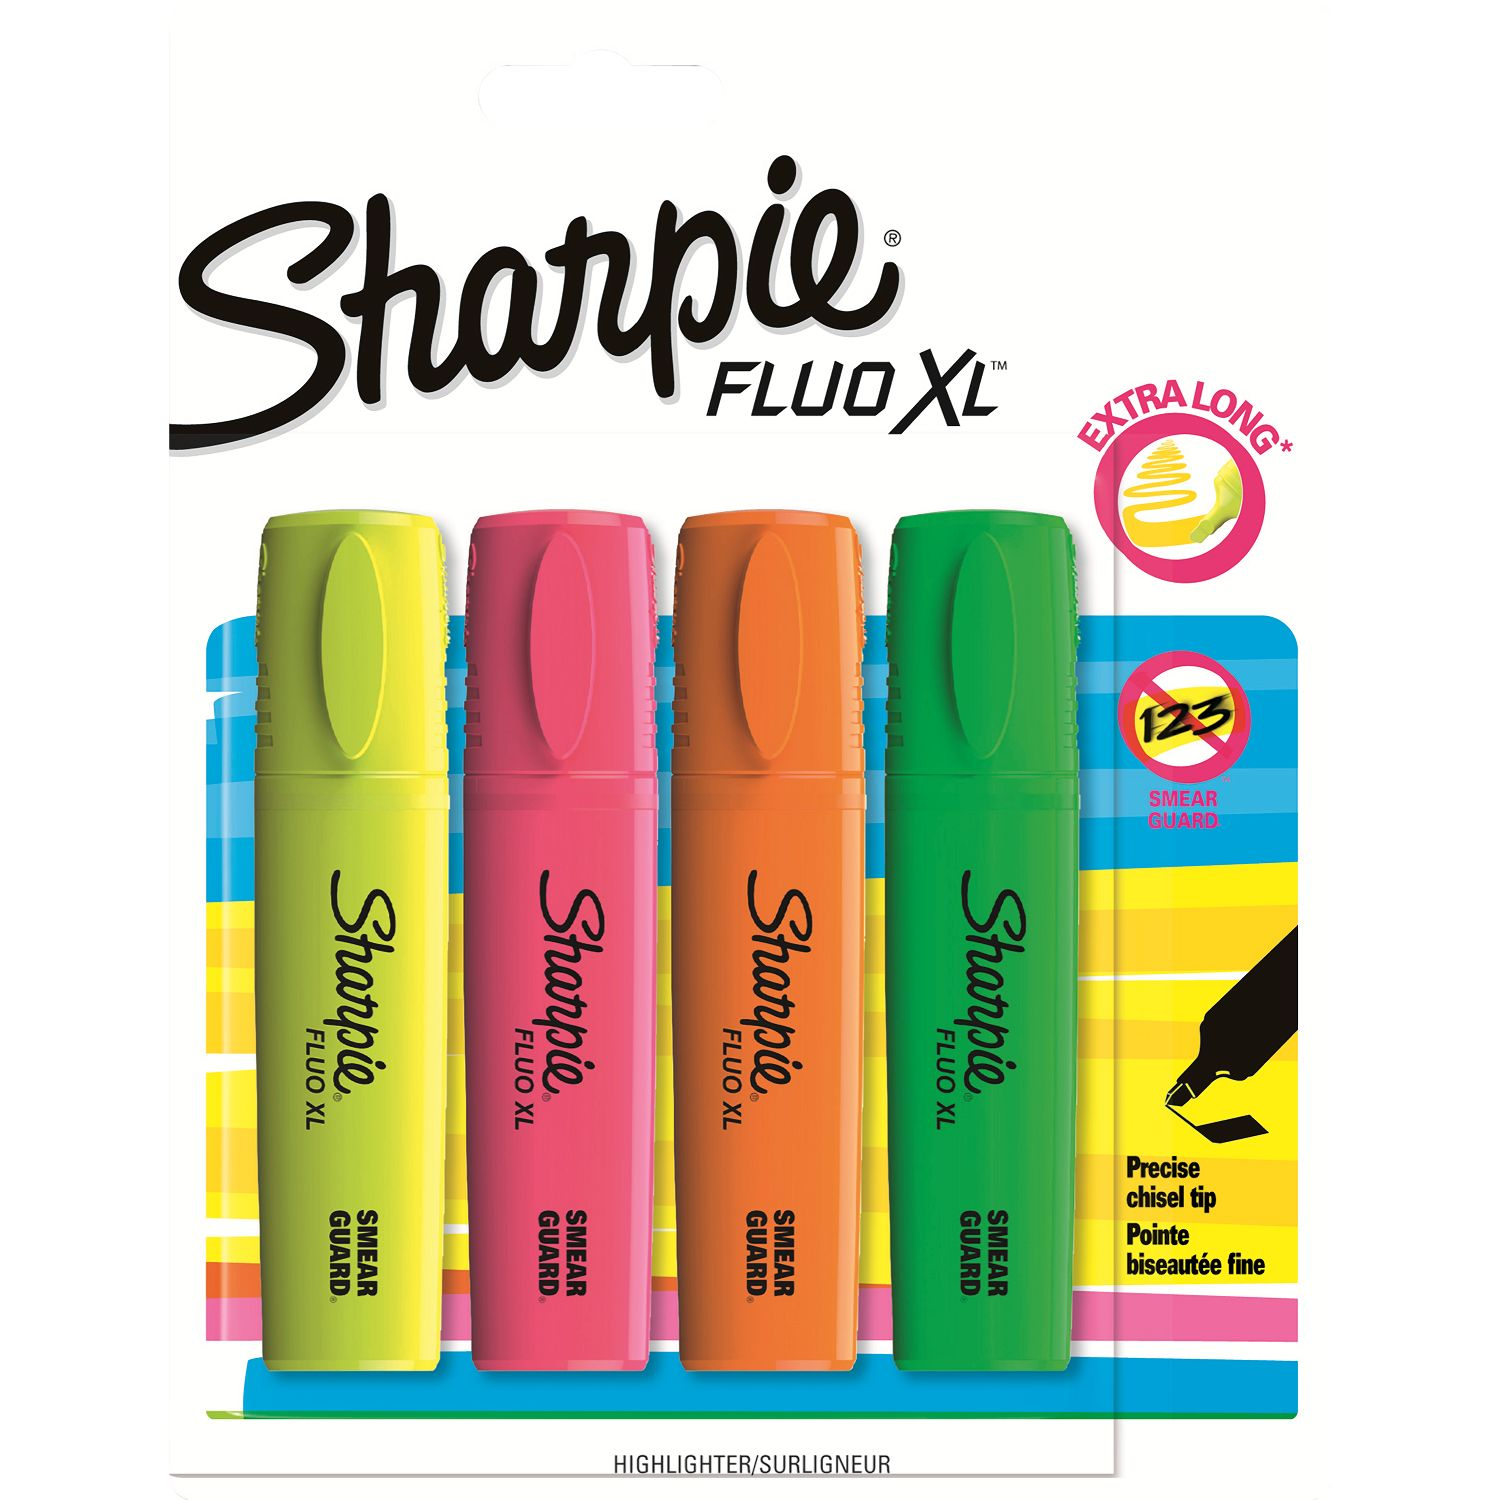 Sharpie Sharpie Highlighters, Pack of 4